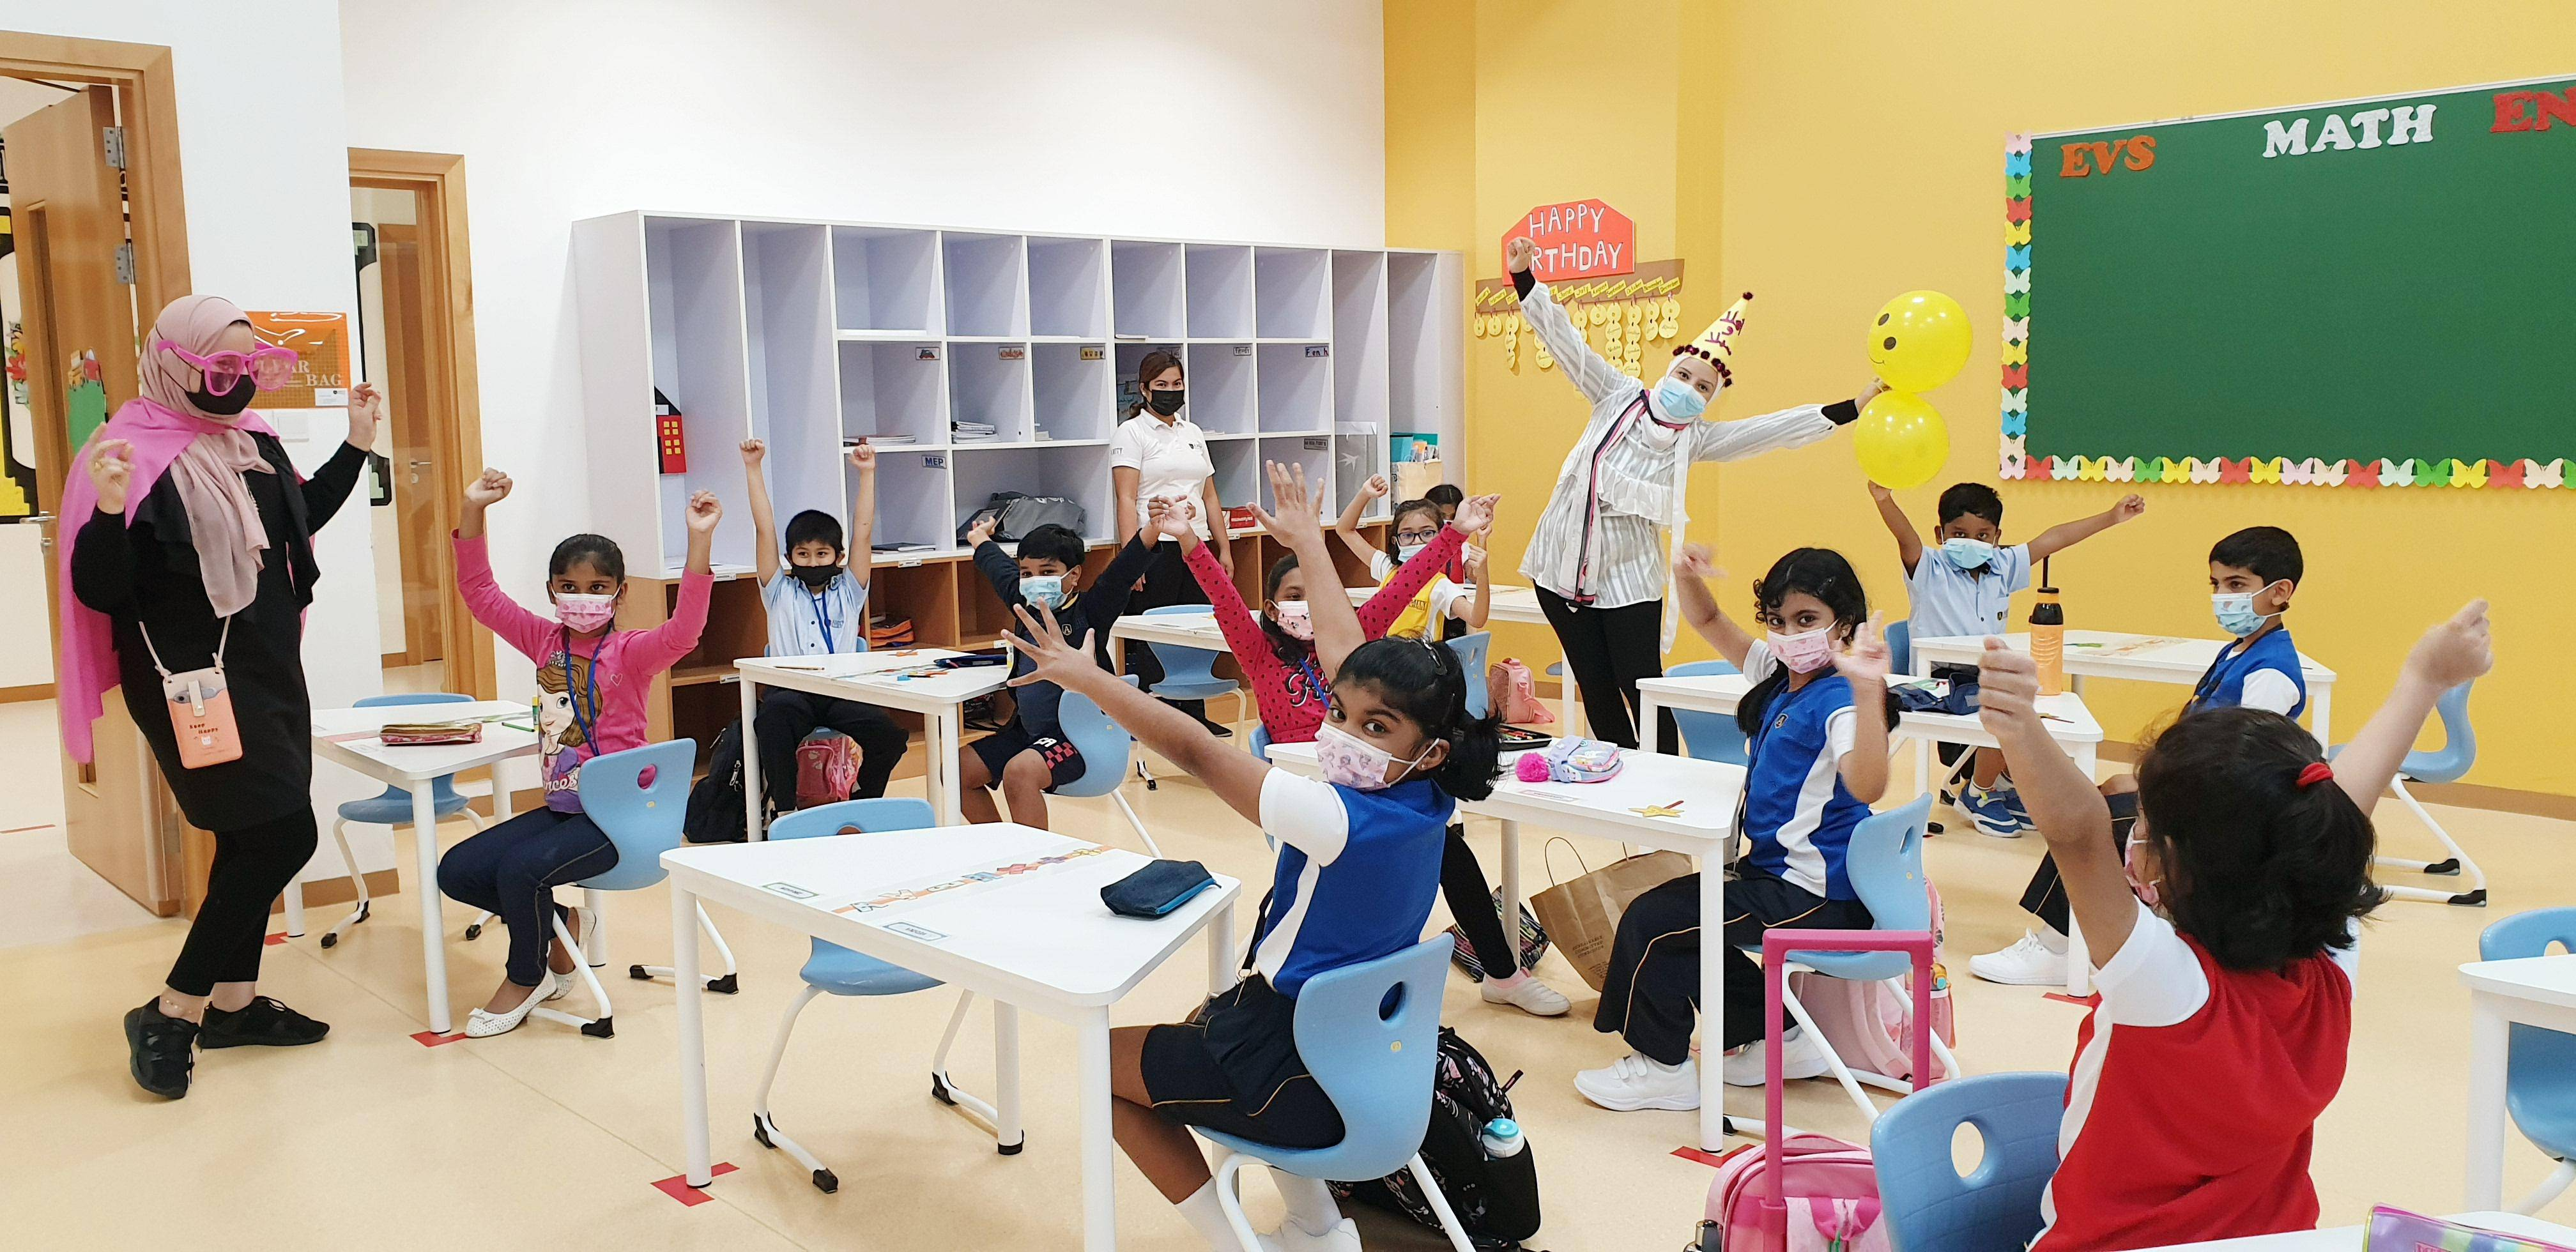 Dubai: Happy faces, some traffic as schools return to full in-person learning - News | Khaleej Times